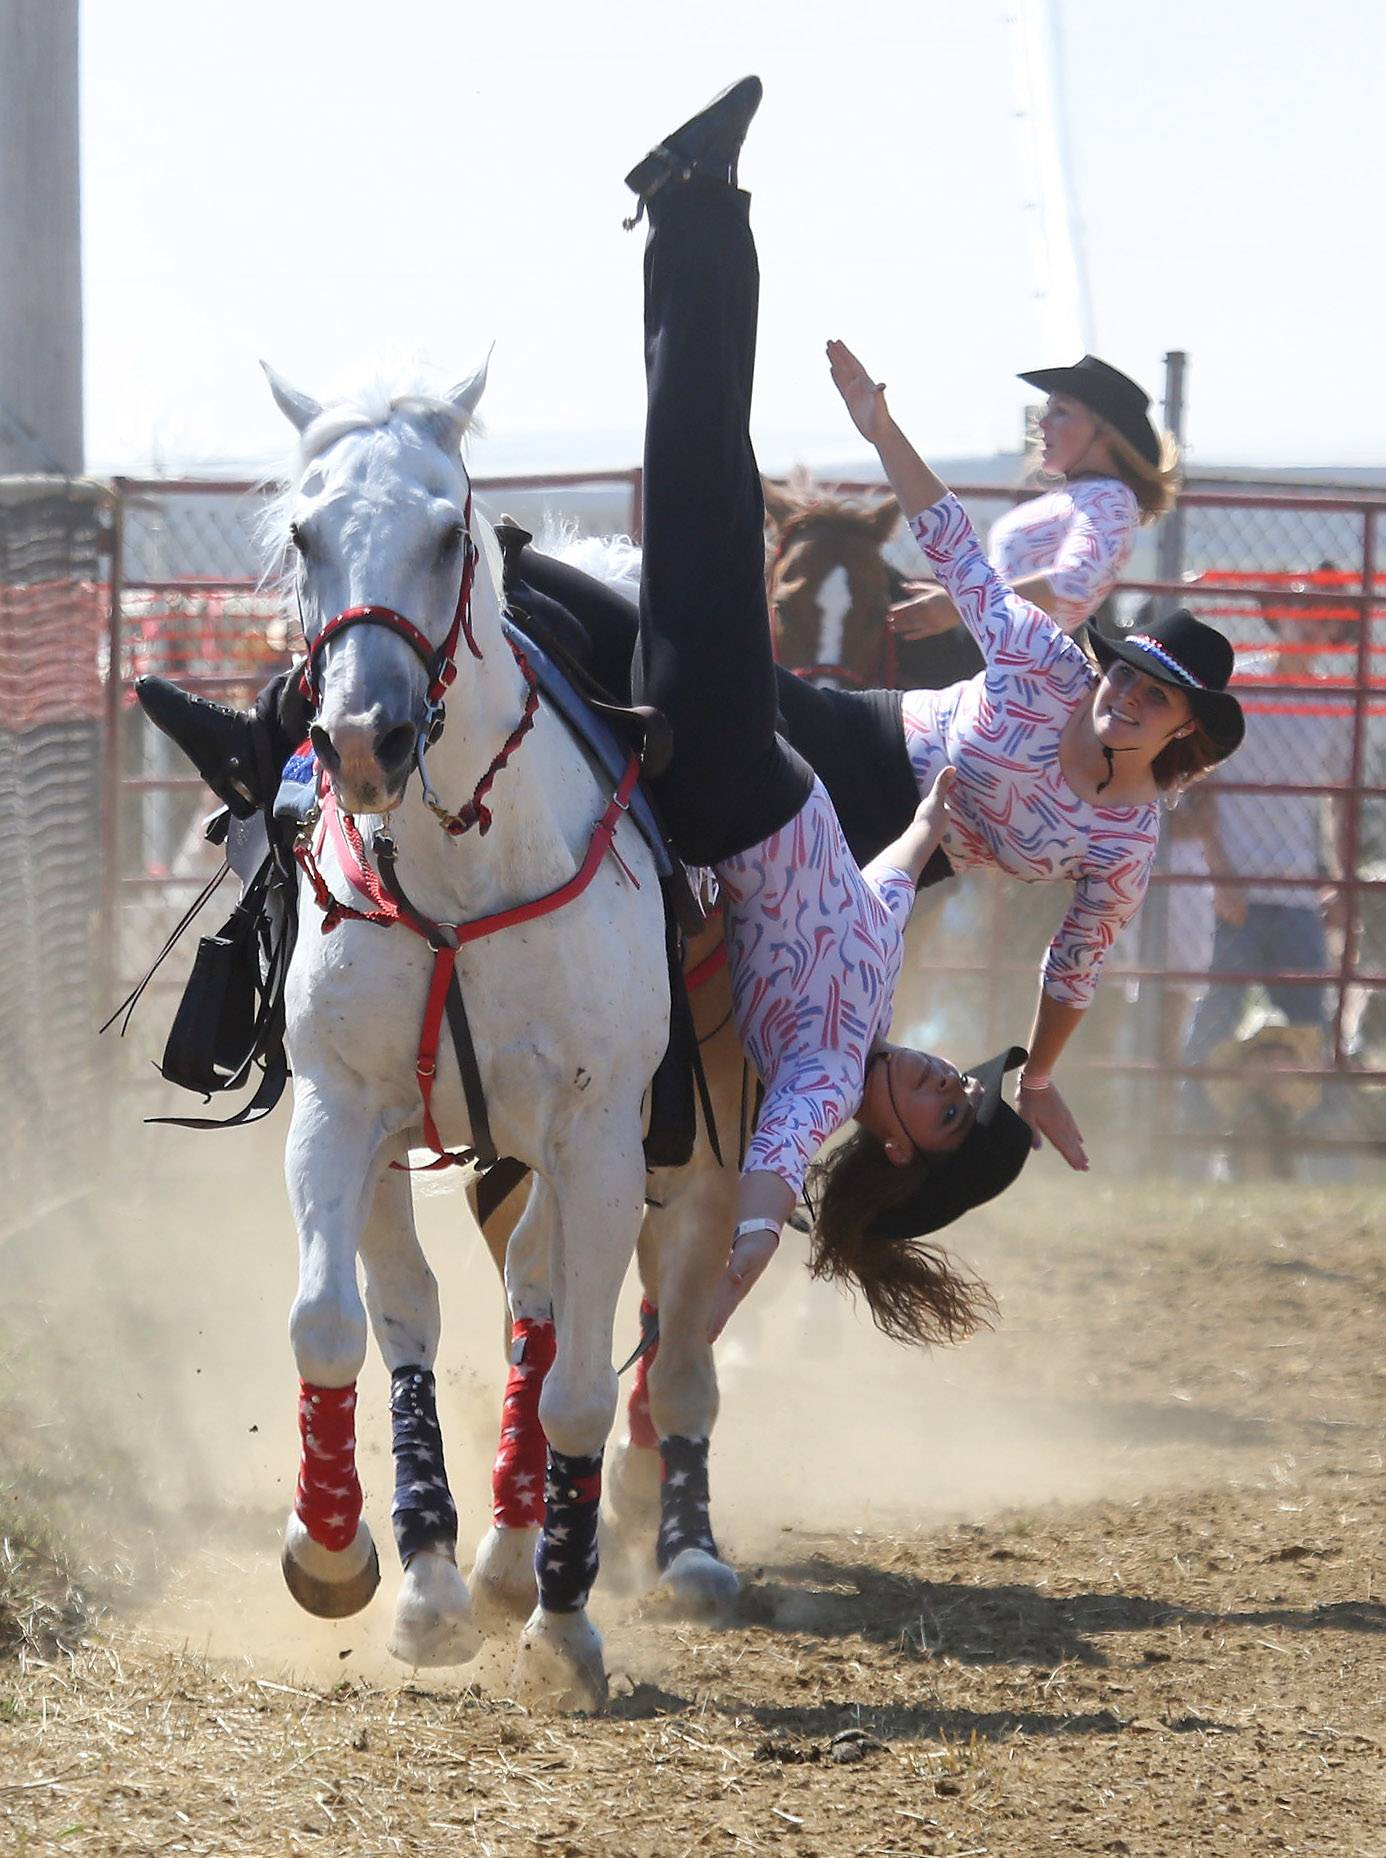 The drill team performs during last year's annual IPRA Championship Wauconda Rodeo at Green Oaks Rodeo Grounds.